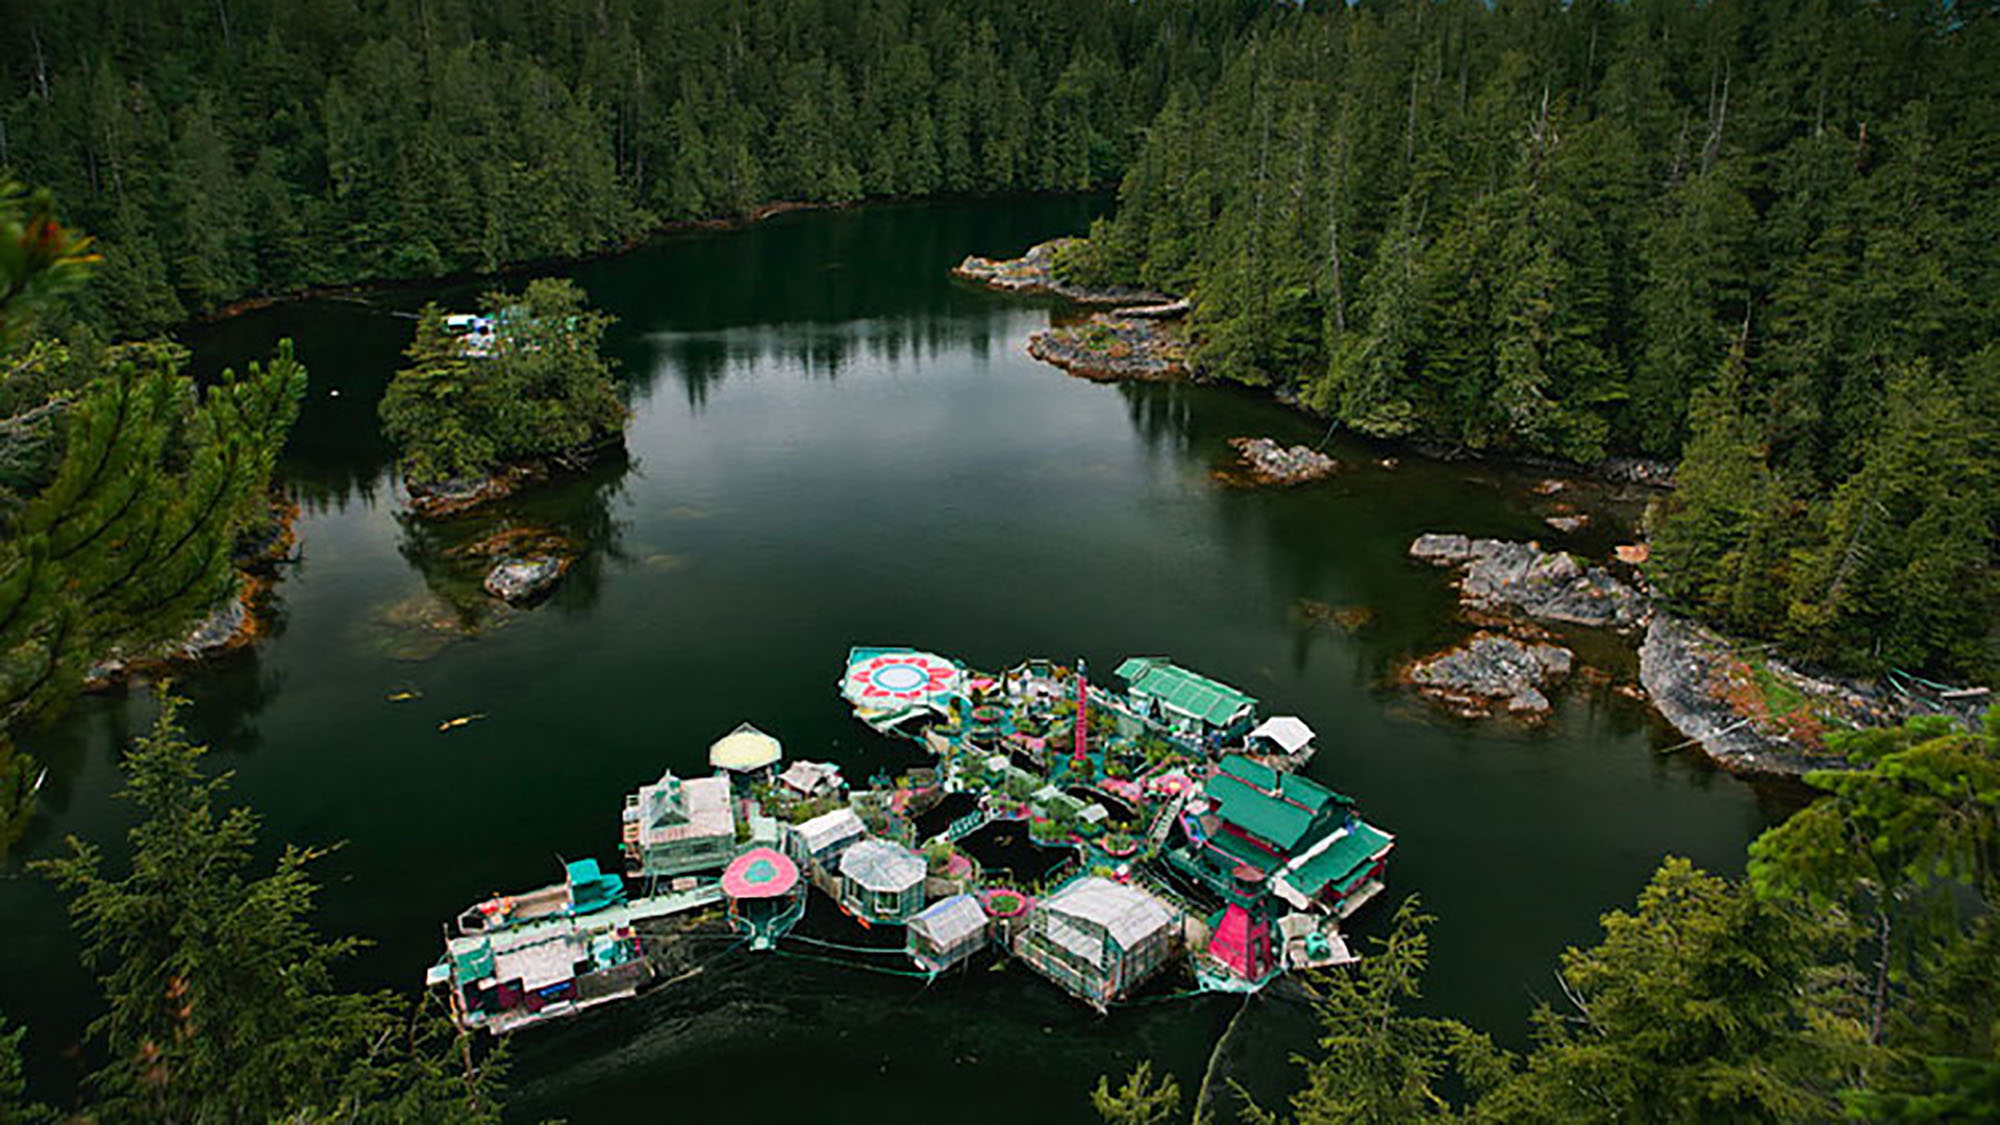 Meet the couple that live on a floating island (that they built!)